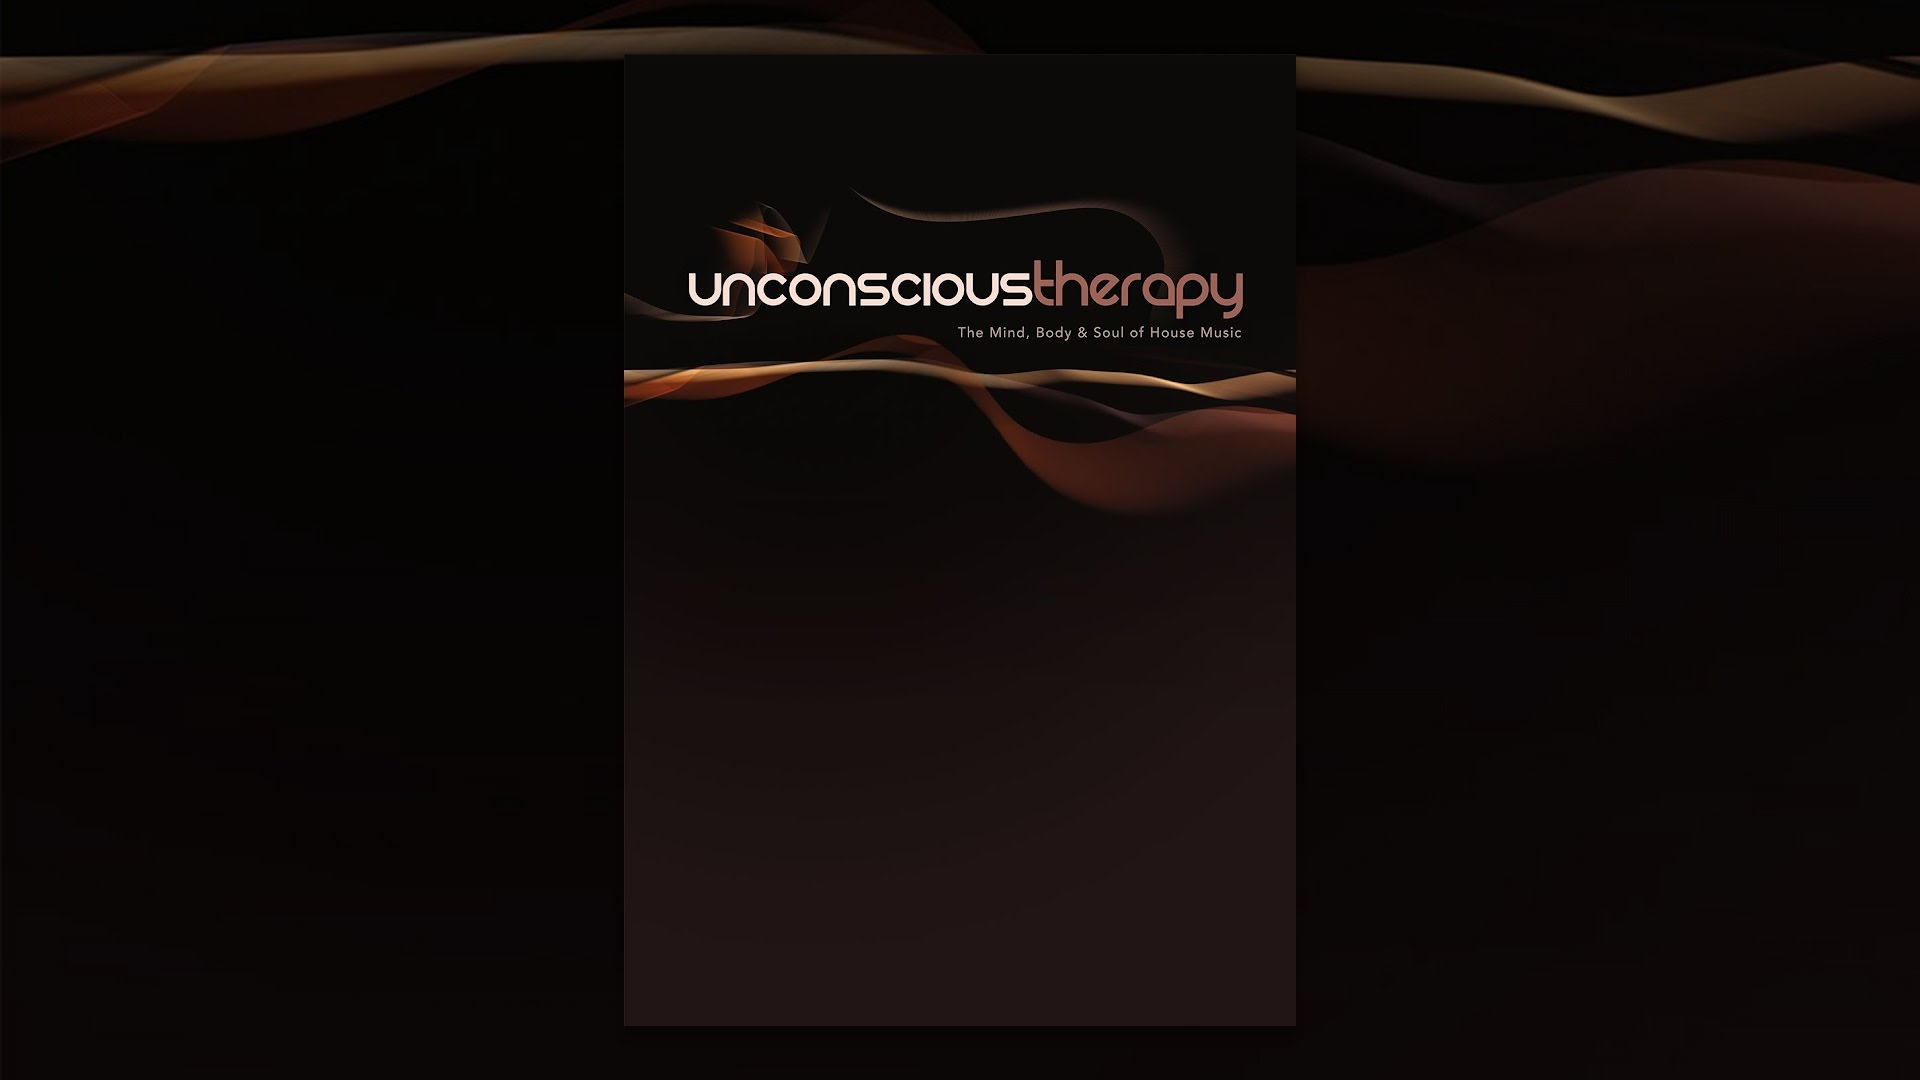 Unconscious Therapy: The Mind, Body & Soul of House Music